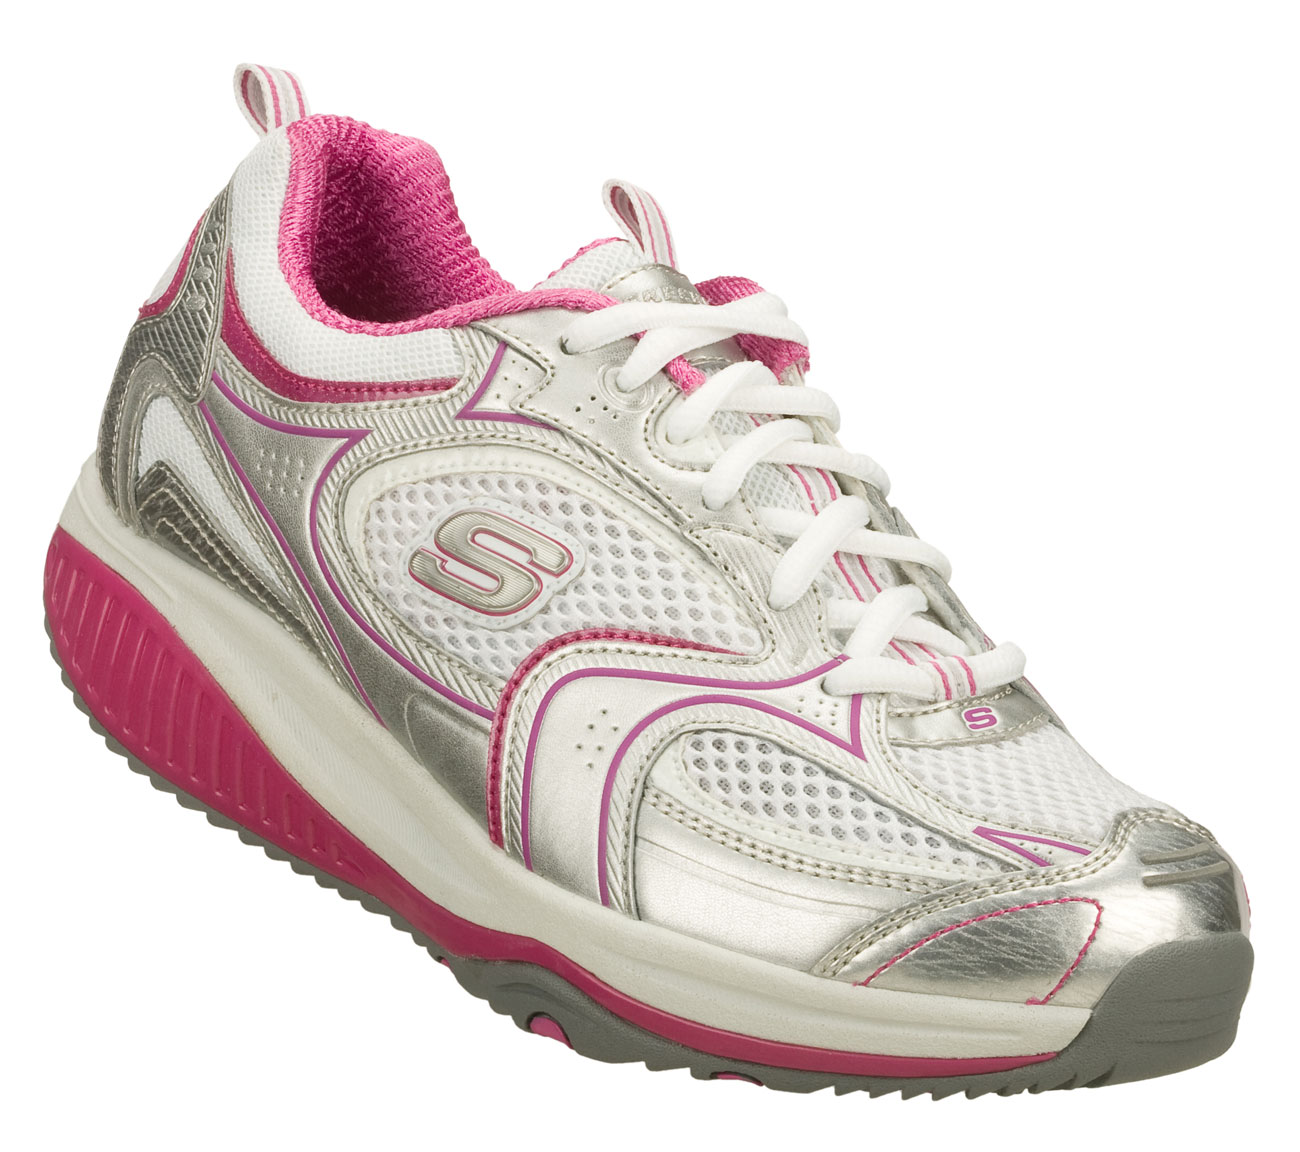 buy skechers shape ups xf accelerators shoes only. Black Bedroom Furniture Sets. Home Design Ideas